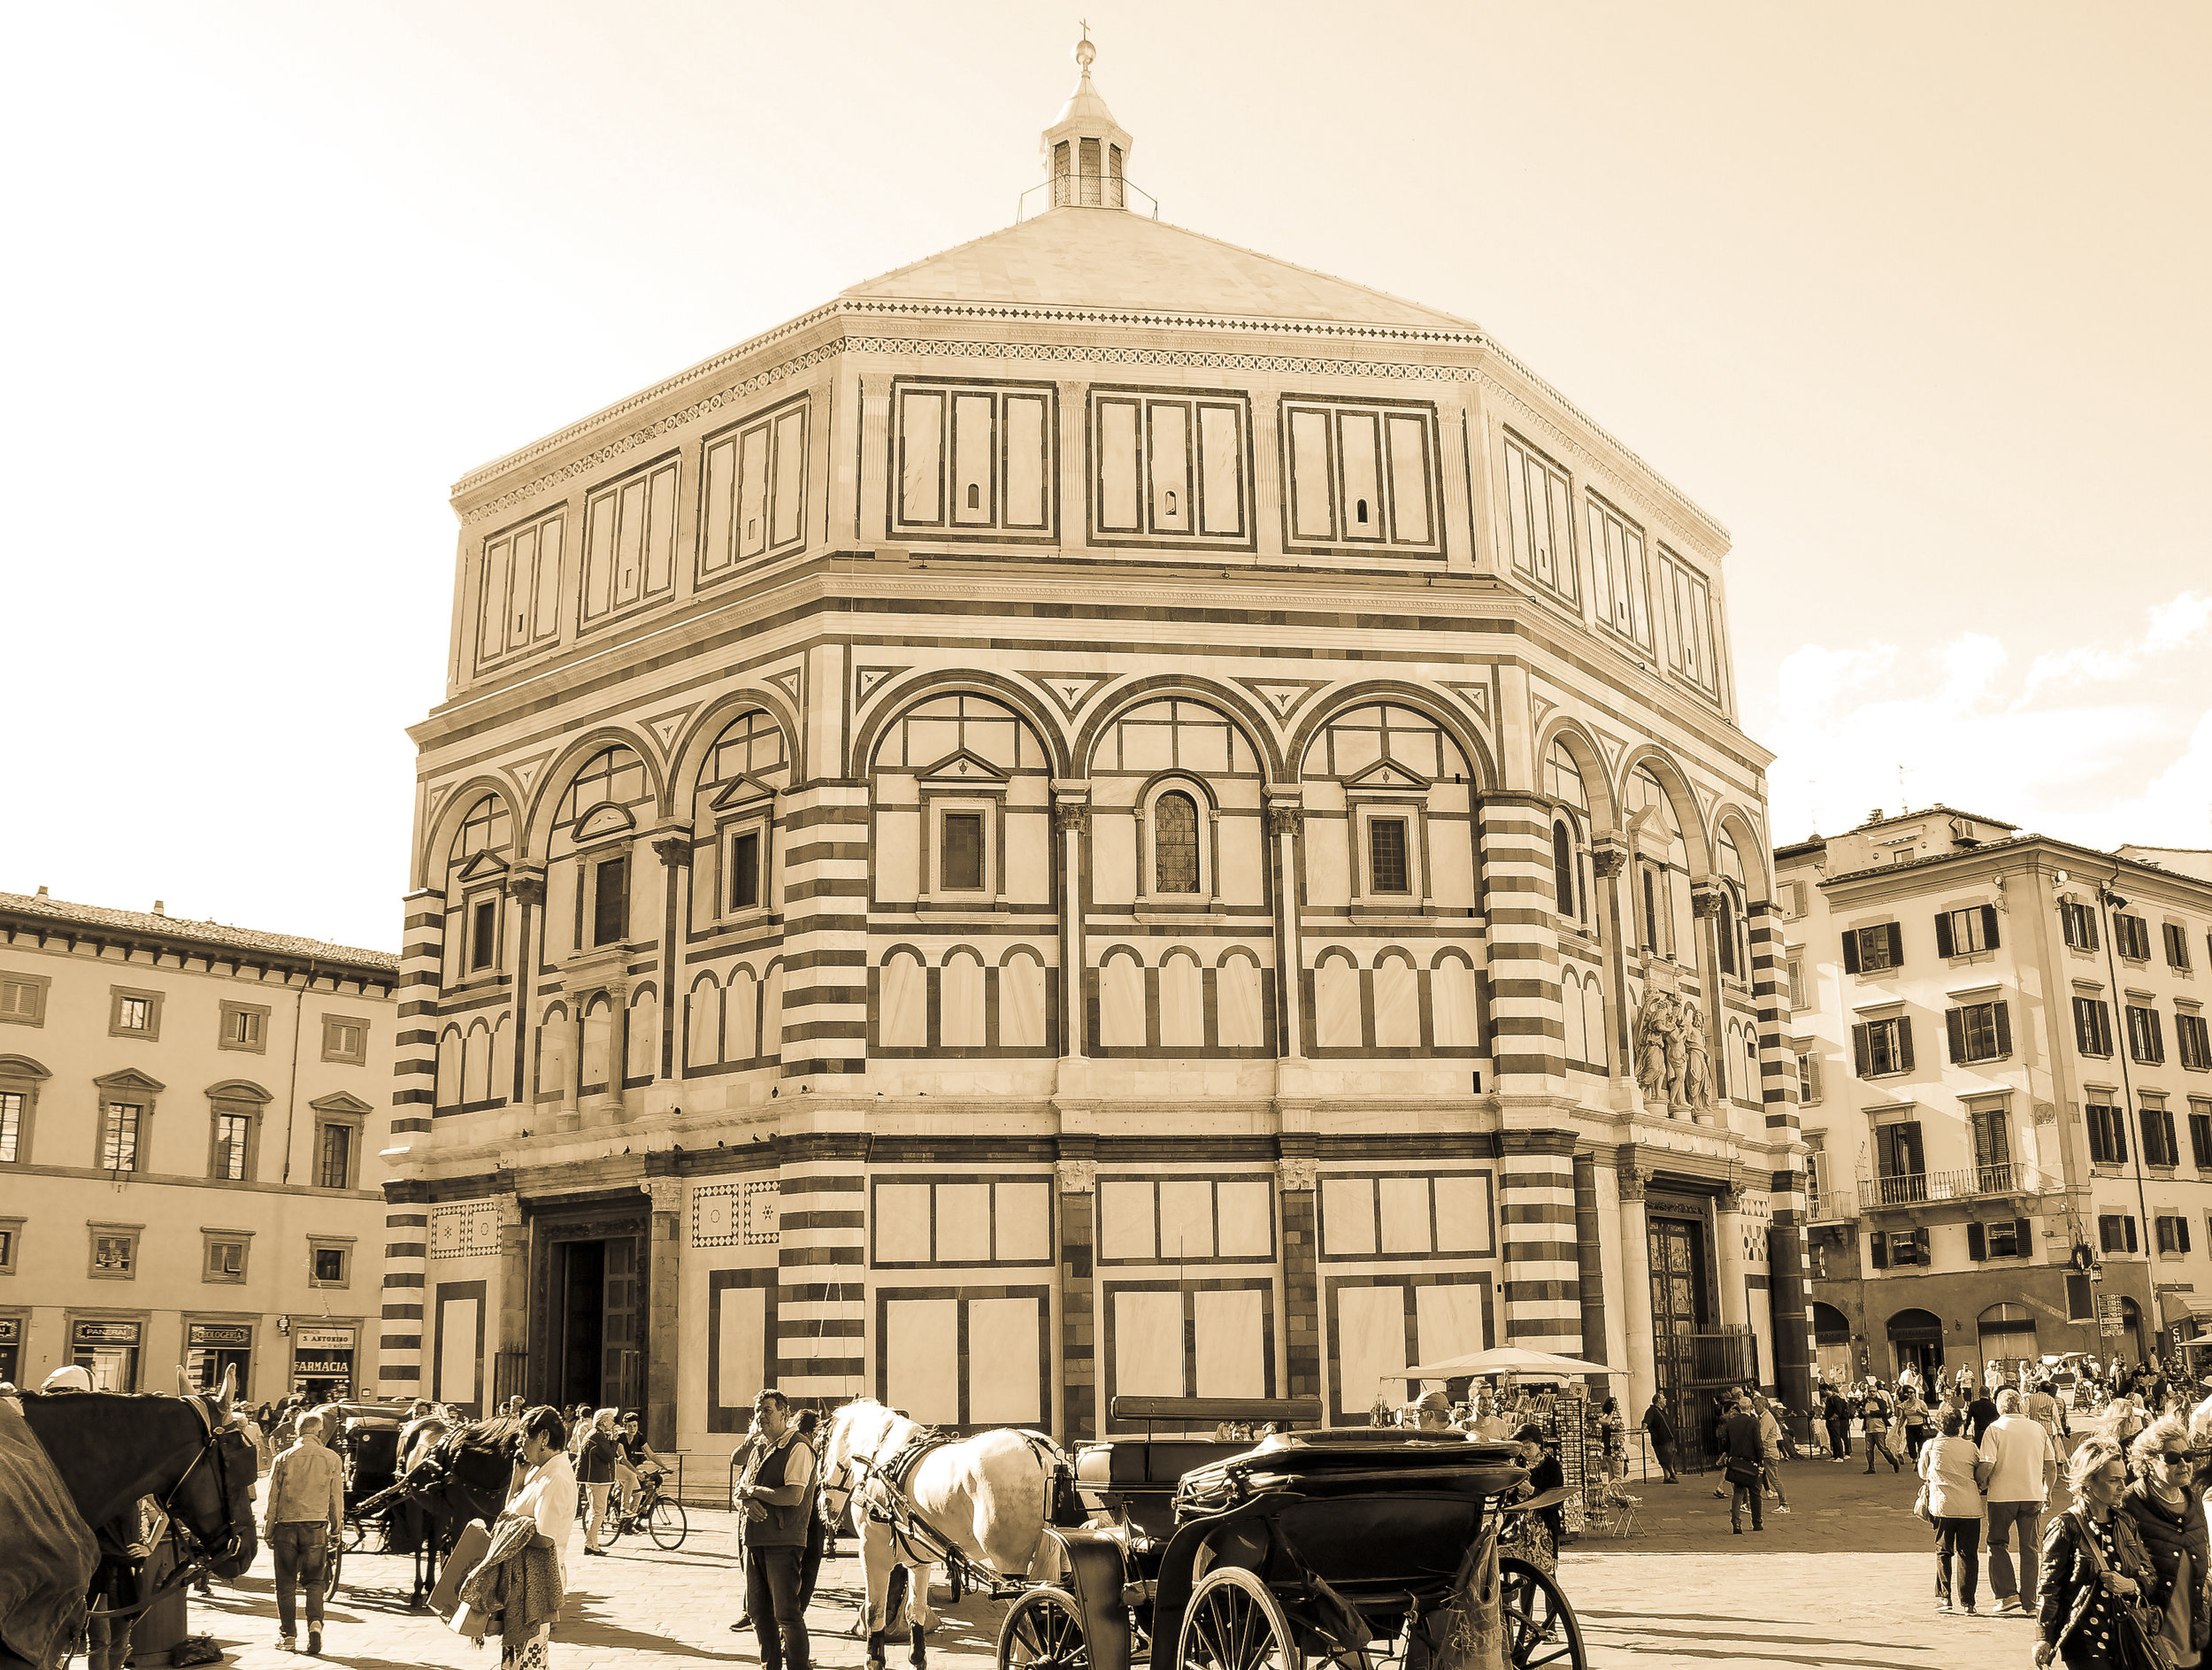 The Baptistery of St. John - Florence, Italy